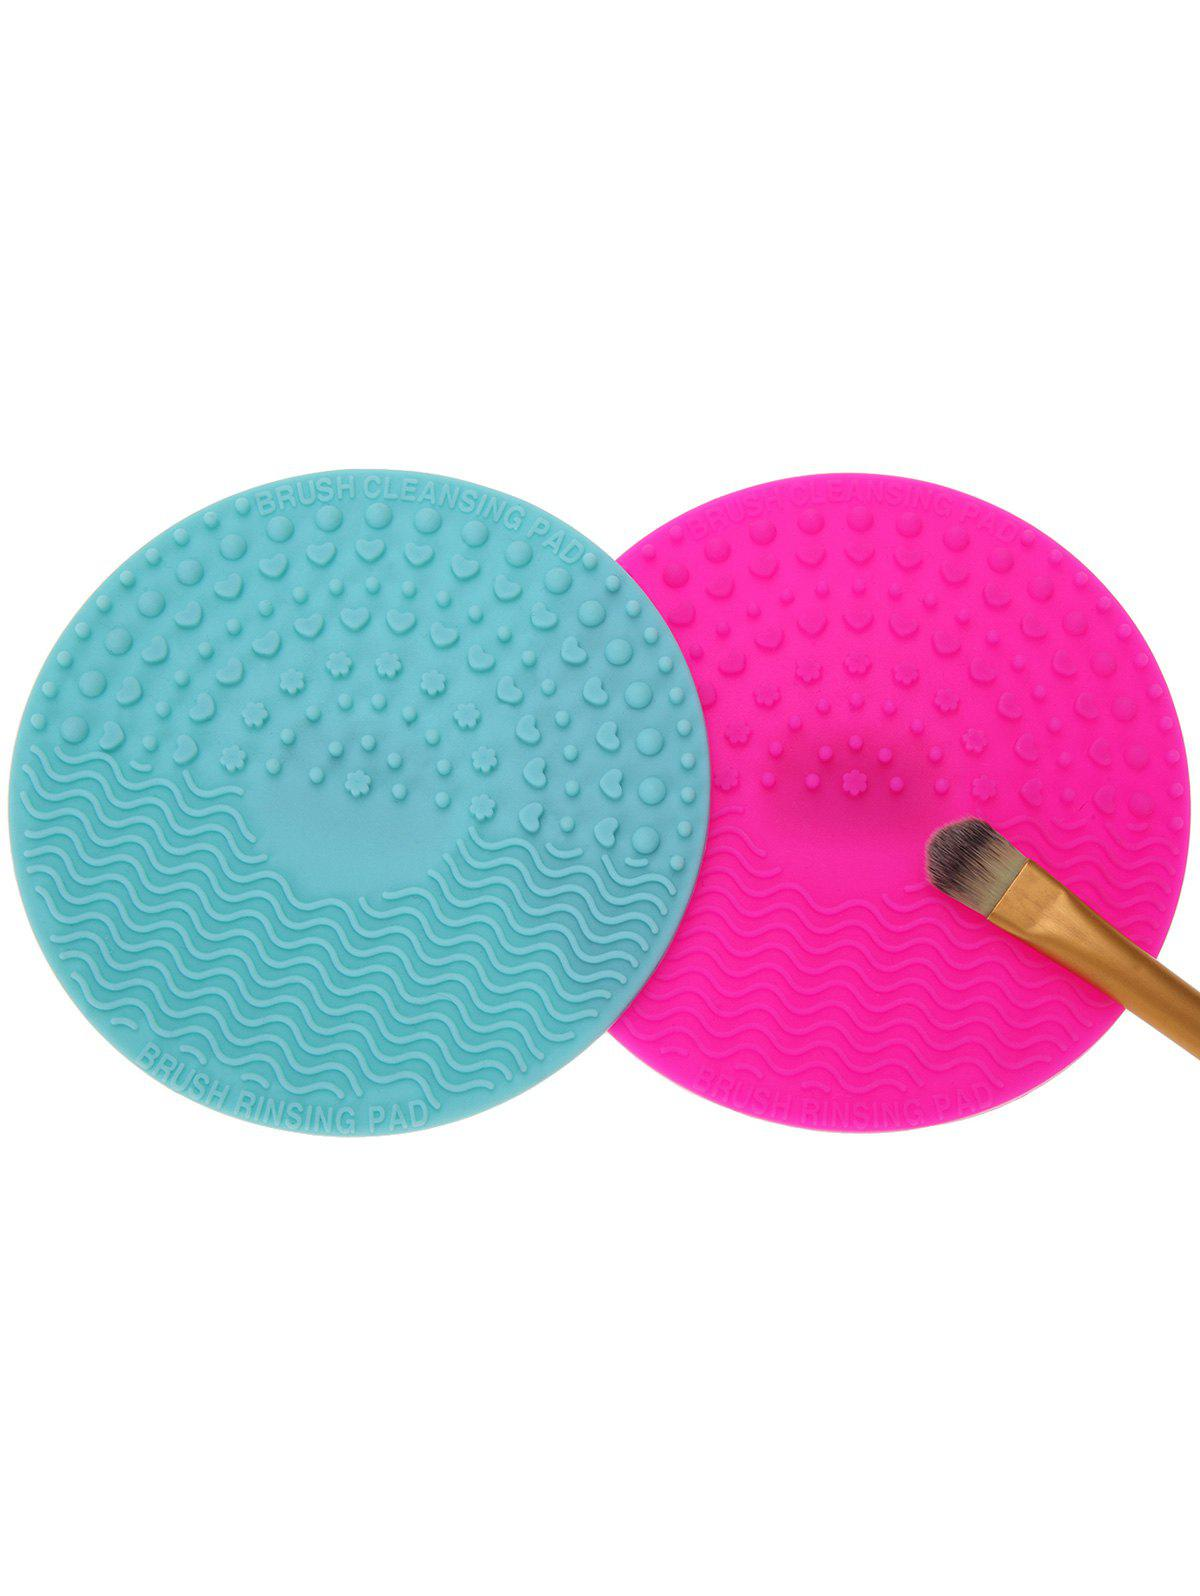 Best 2 Pcs Makeup Brush Cleaner Pads